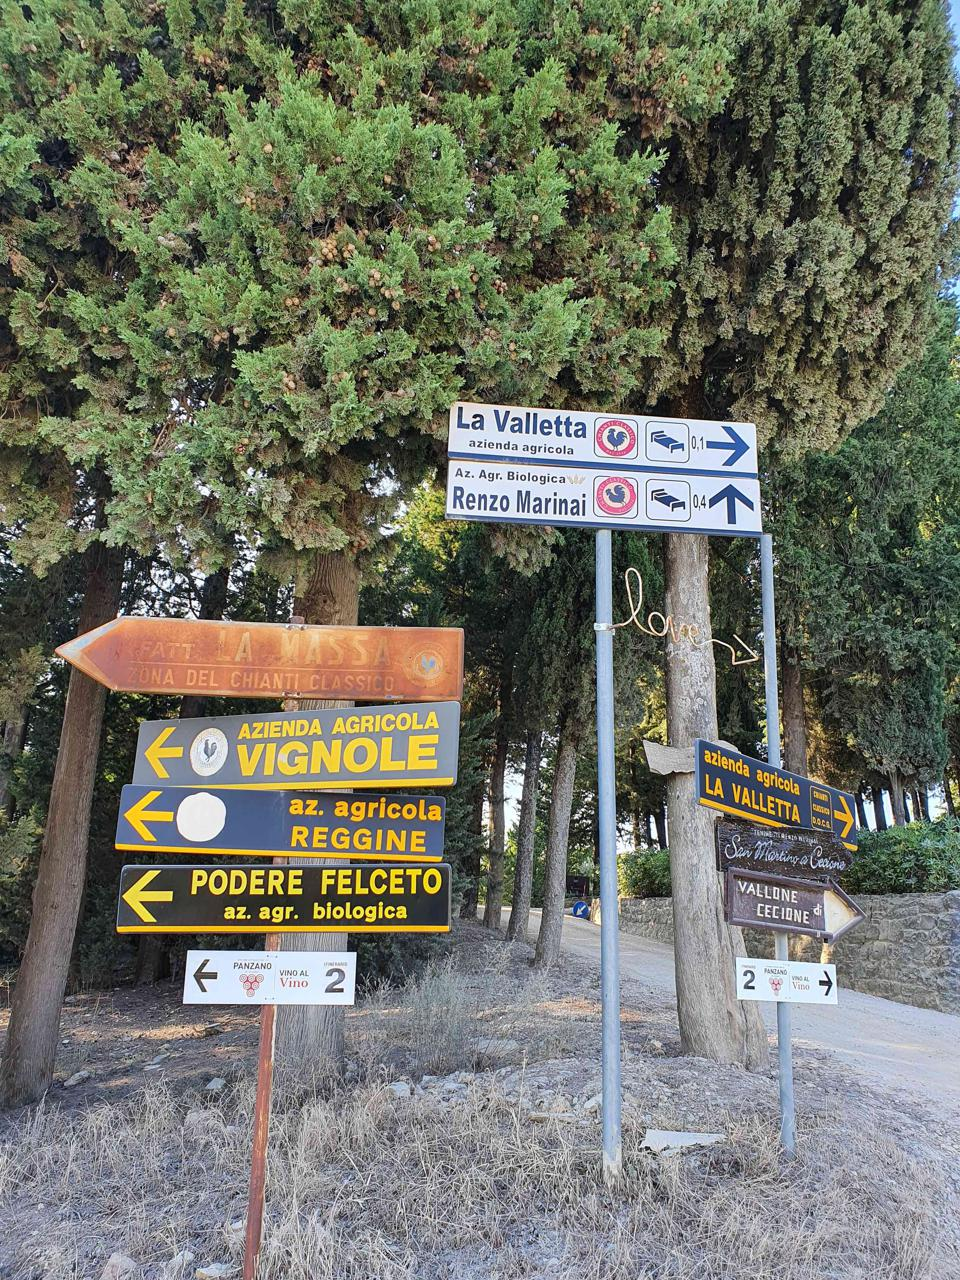 Street signs at Panzano di Chianti lead to Italian Tuscany wineries and agriturismo farmstays